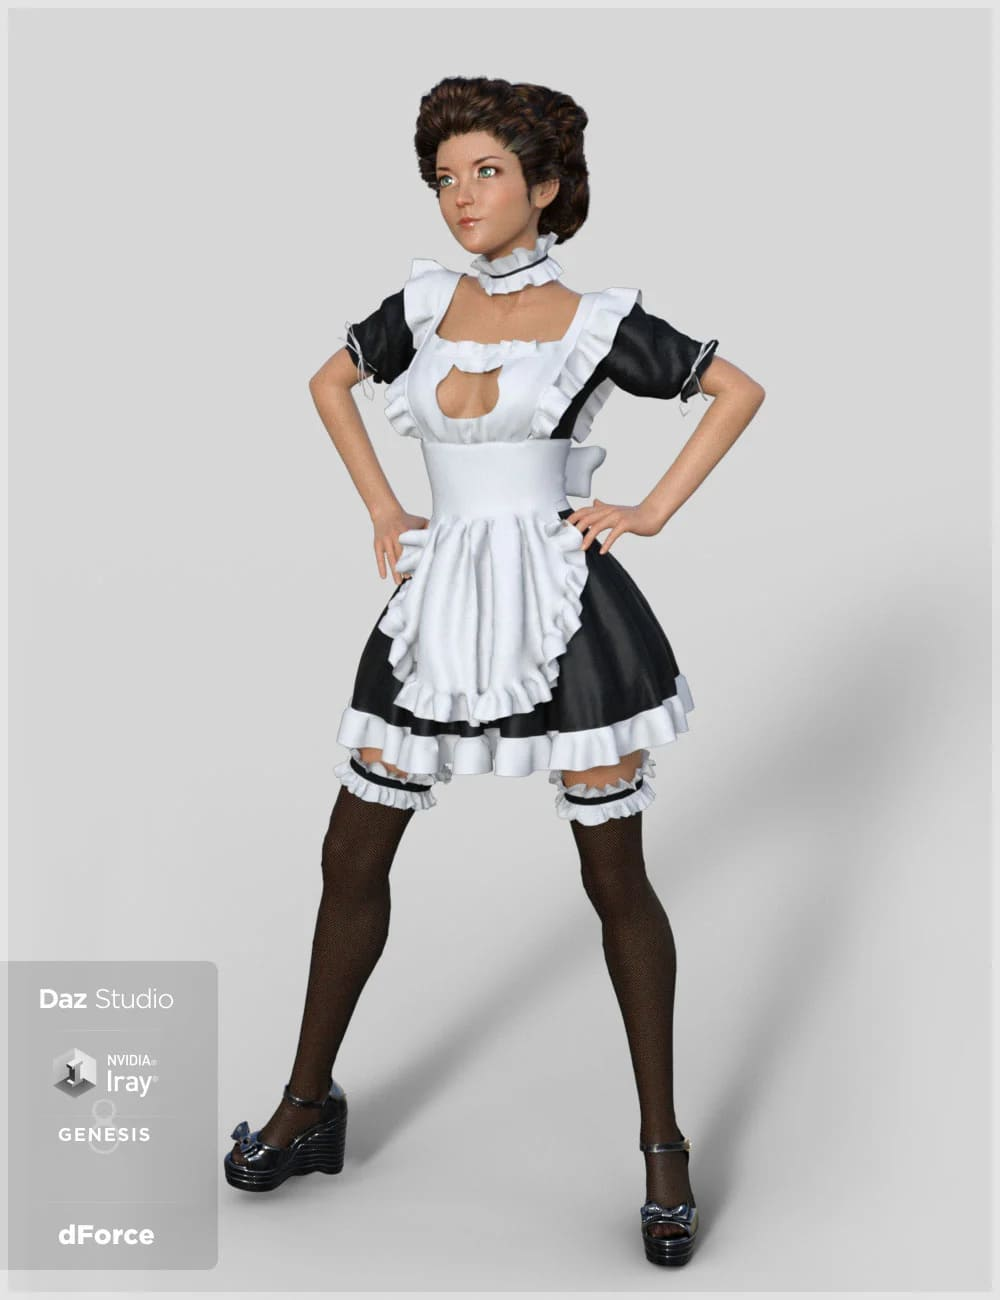 dForce French Maid Servant Outfit for Genesis 8 Female(s)_DAZ3D下载站